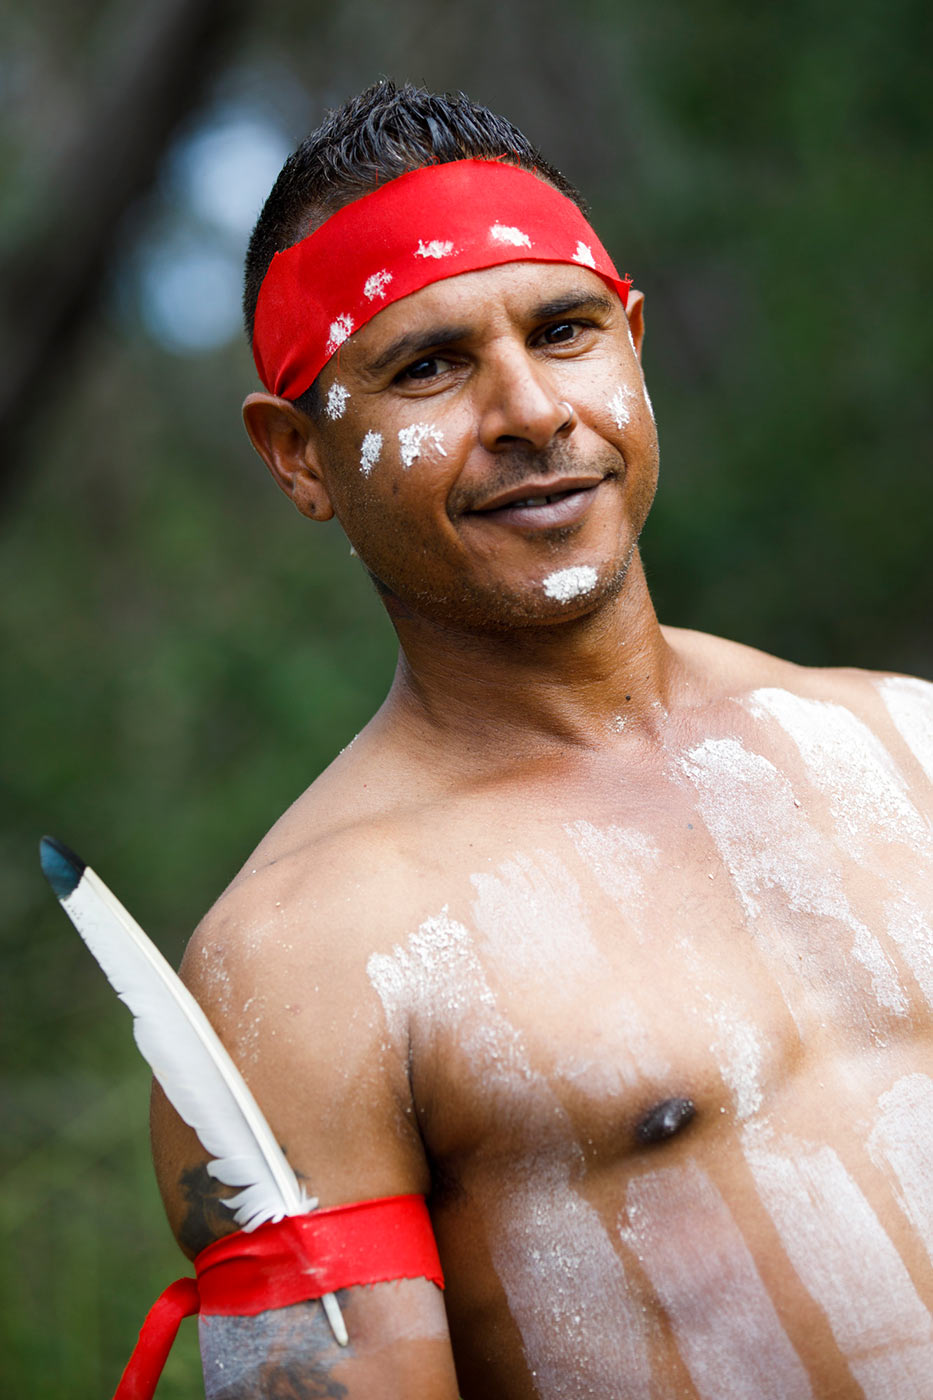 Colour photograph of a man smiling and posing for the camera . He is wearing a red bandana and body paint. - click to view larger image